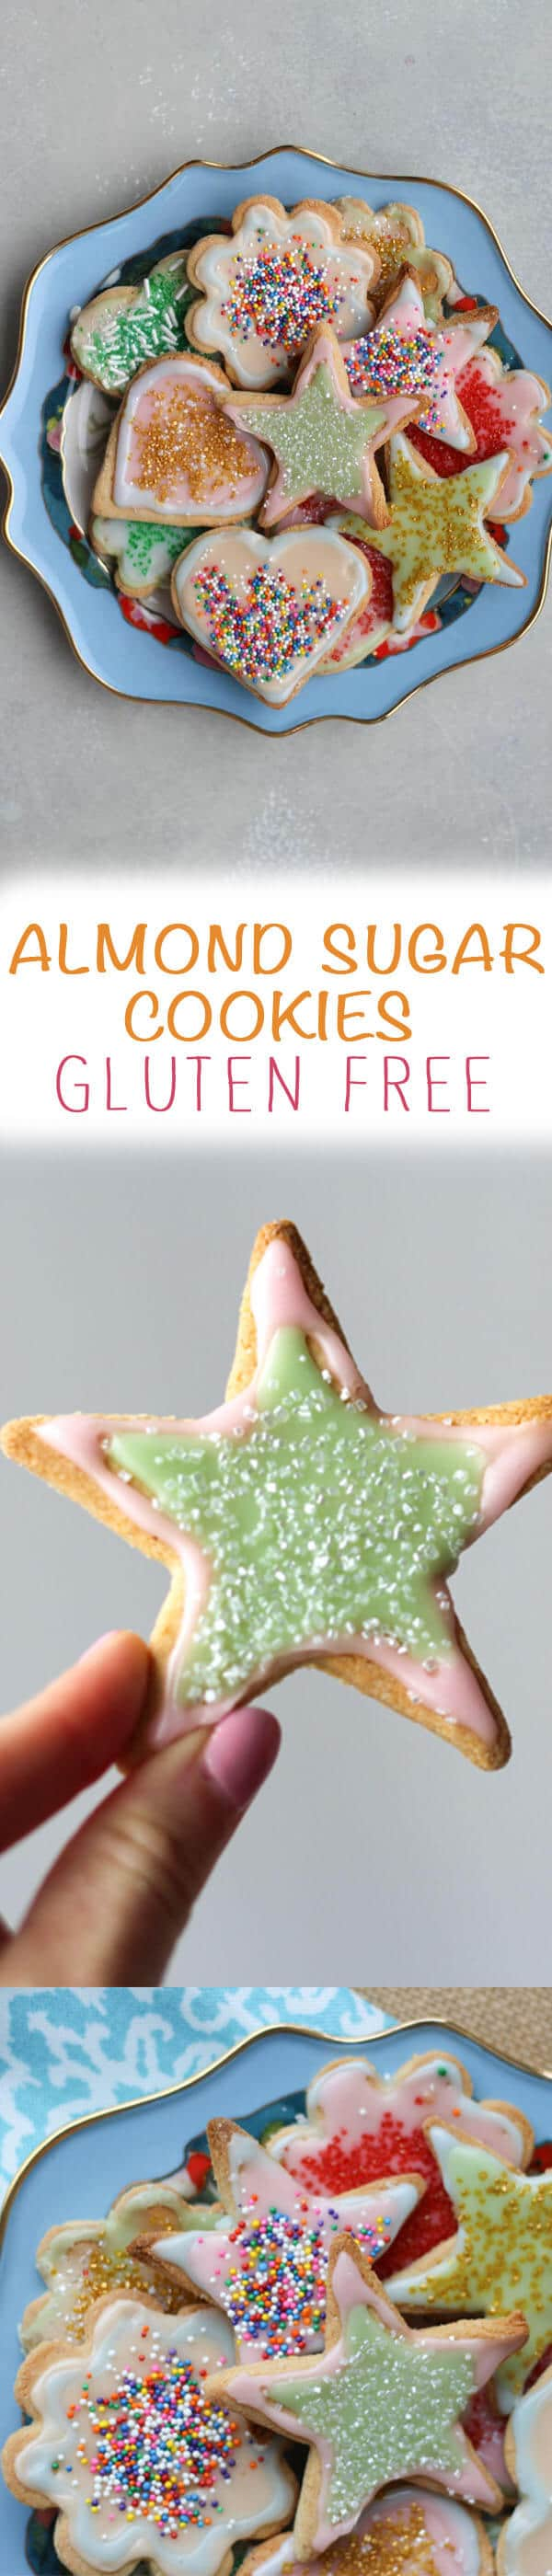 "A pinterest image with sugar cookies with the overlay text ""Almond Sugar Cookies Gluten Free.\"""